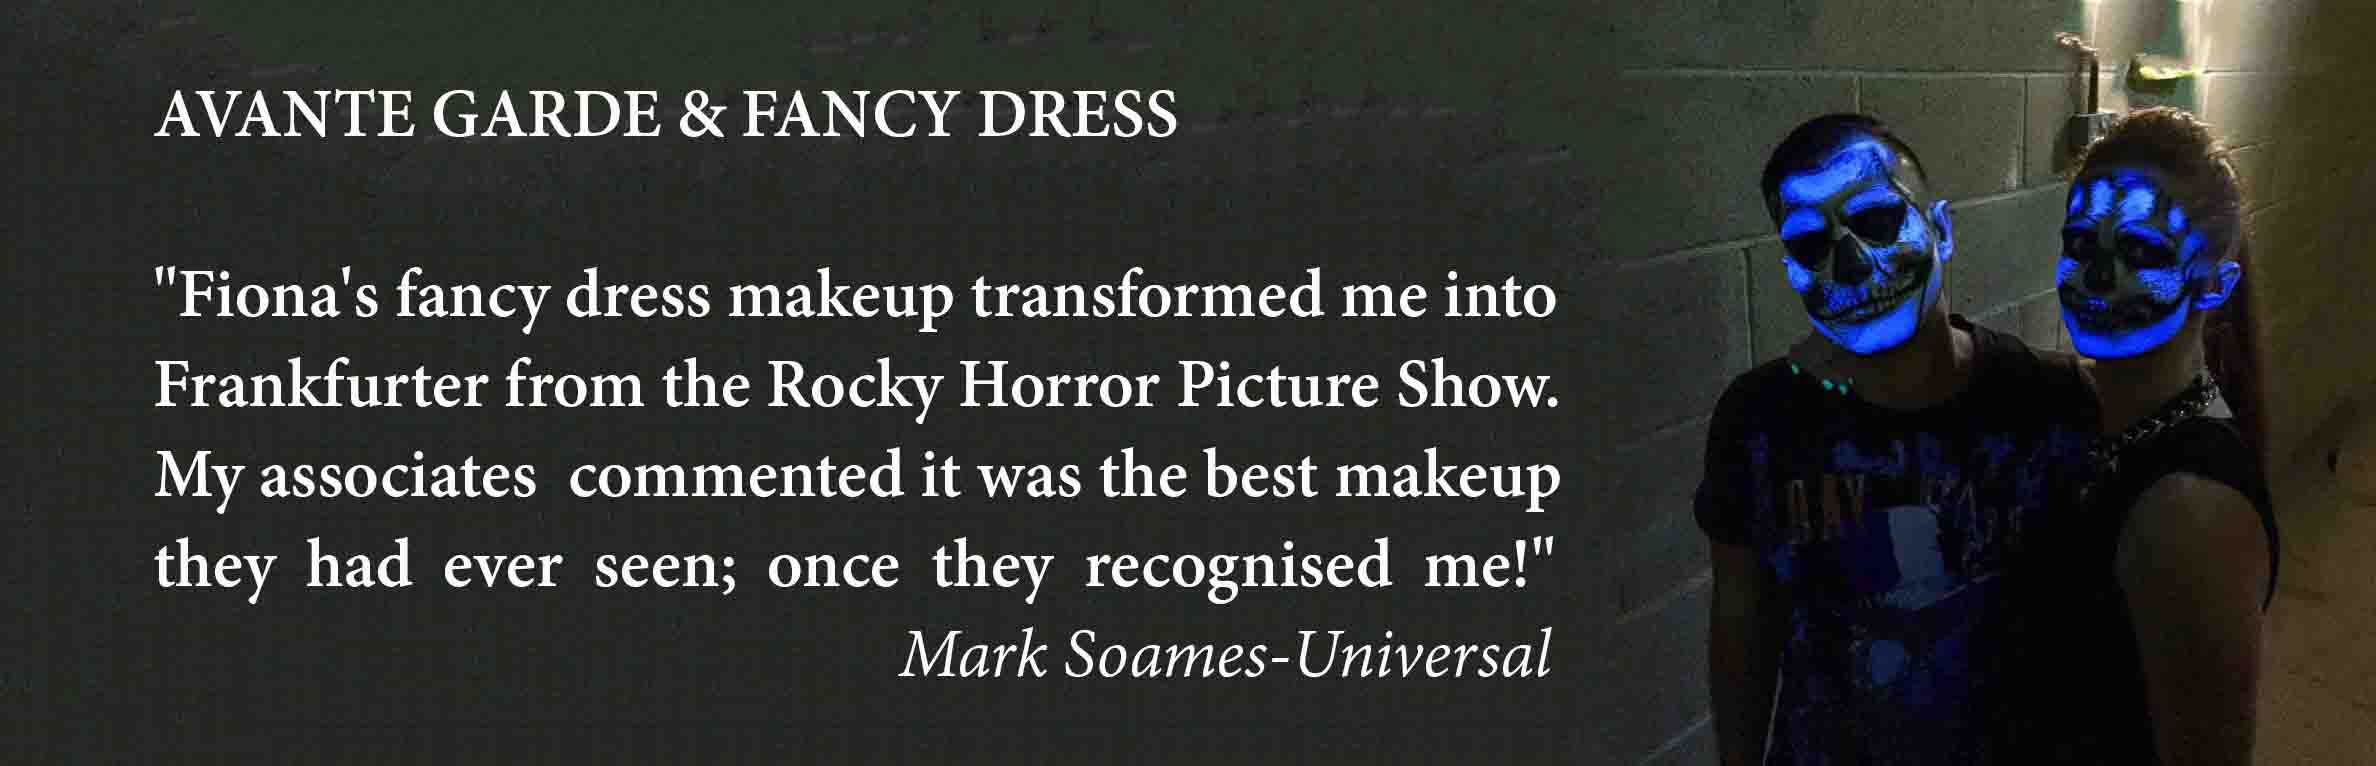 avante garde & fancy dress 4 makeup artists in London